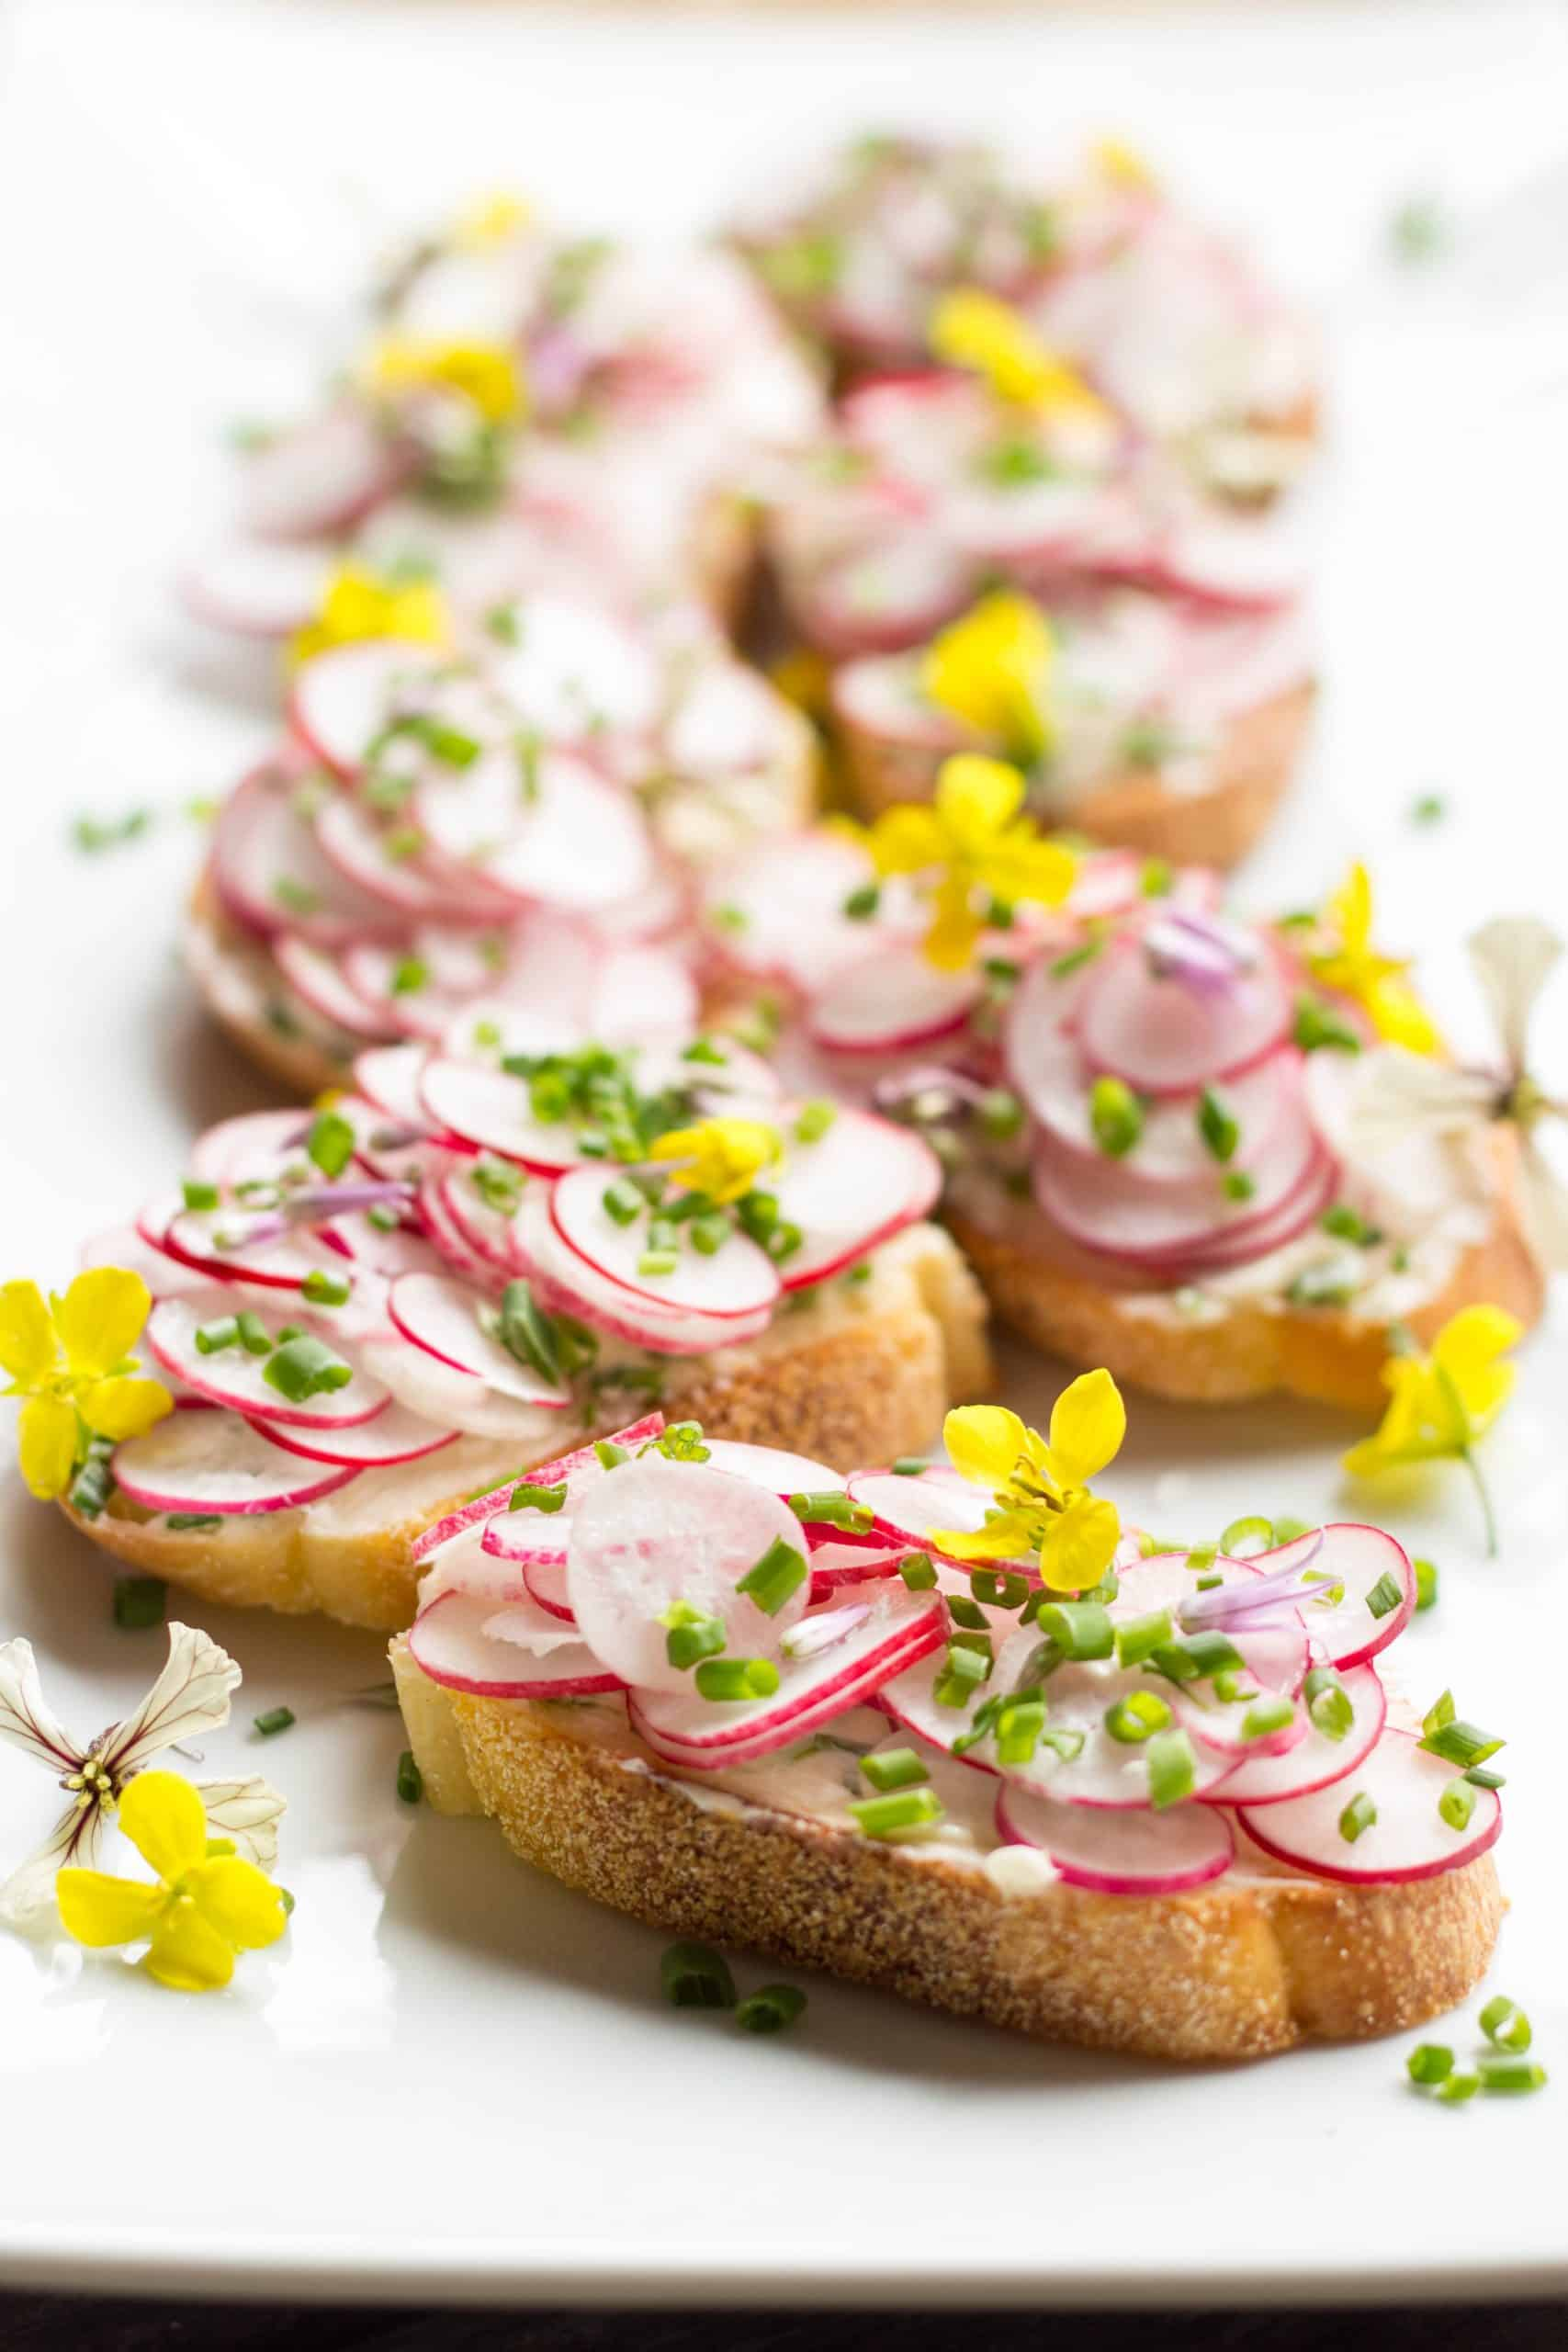 Radish Toasts with Chive Butter